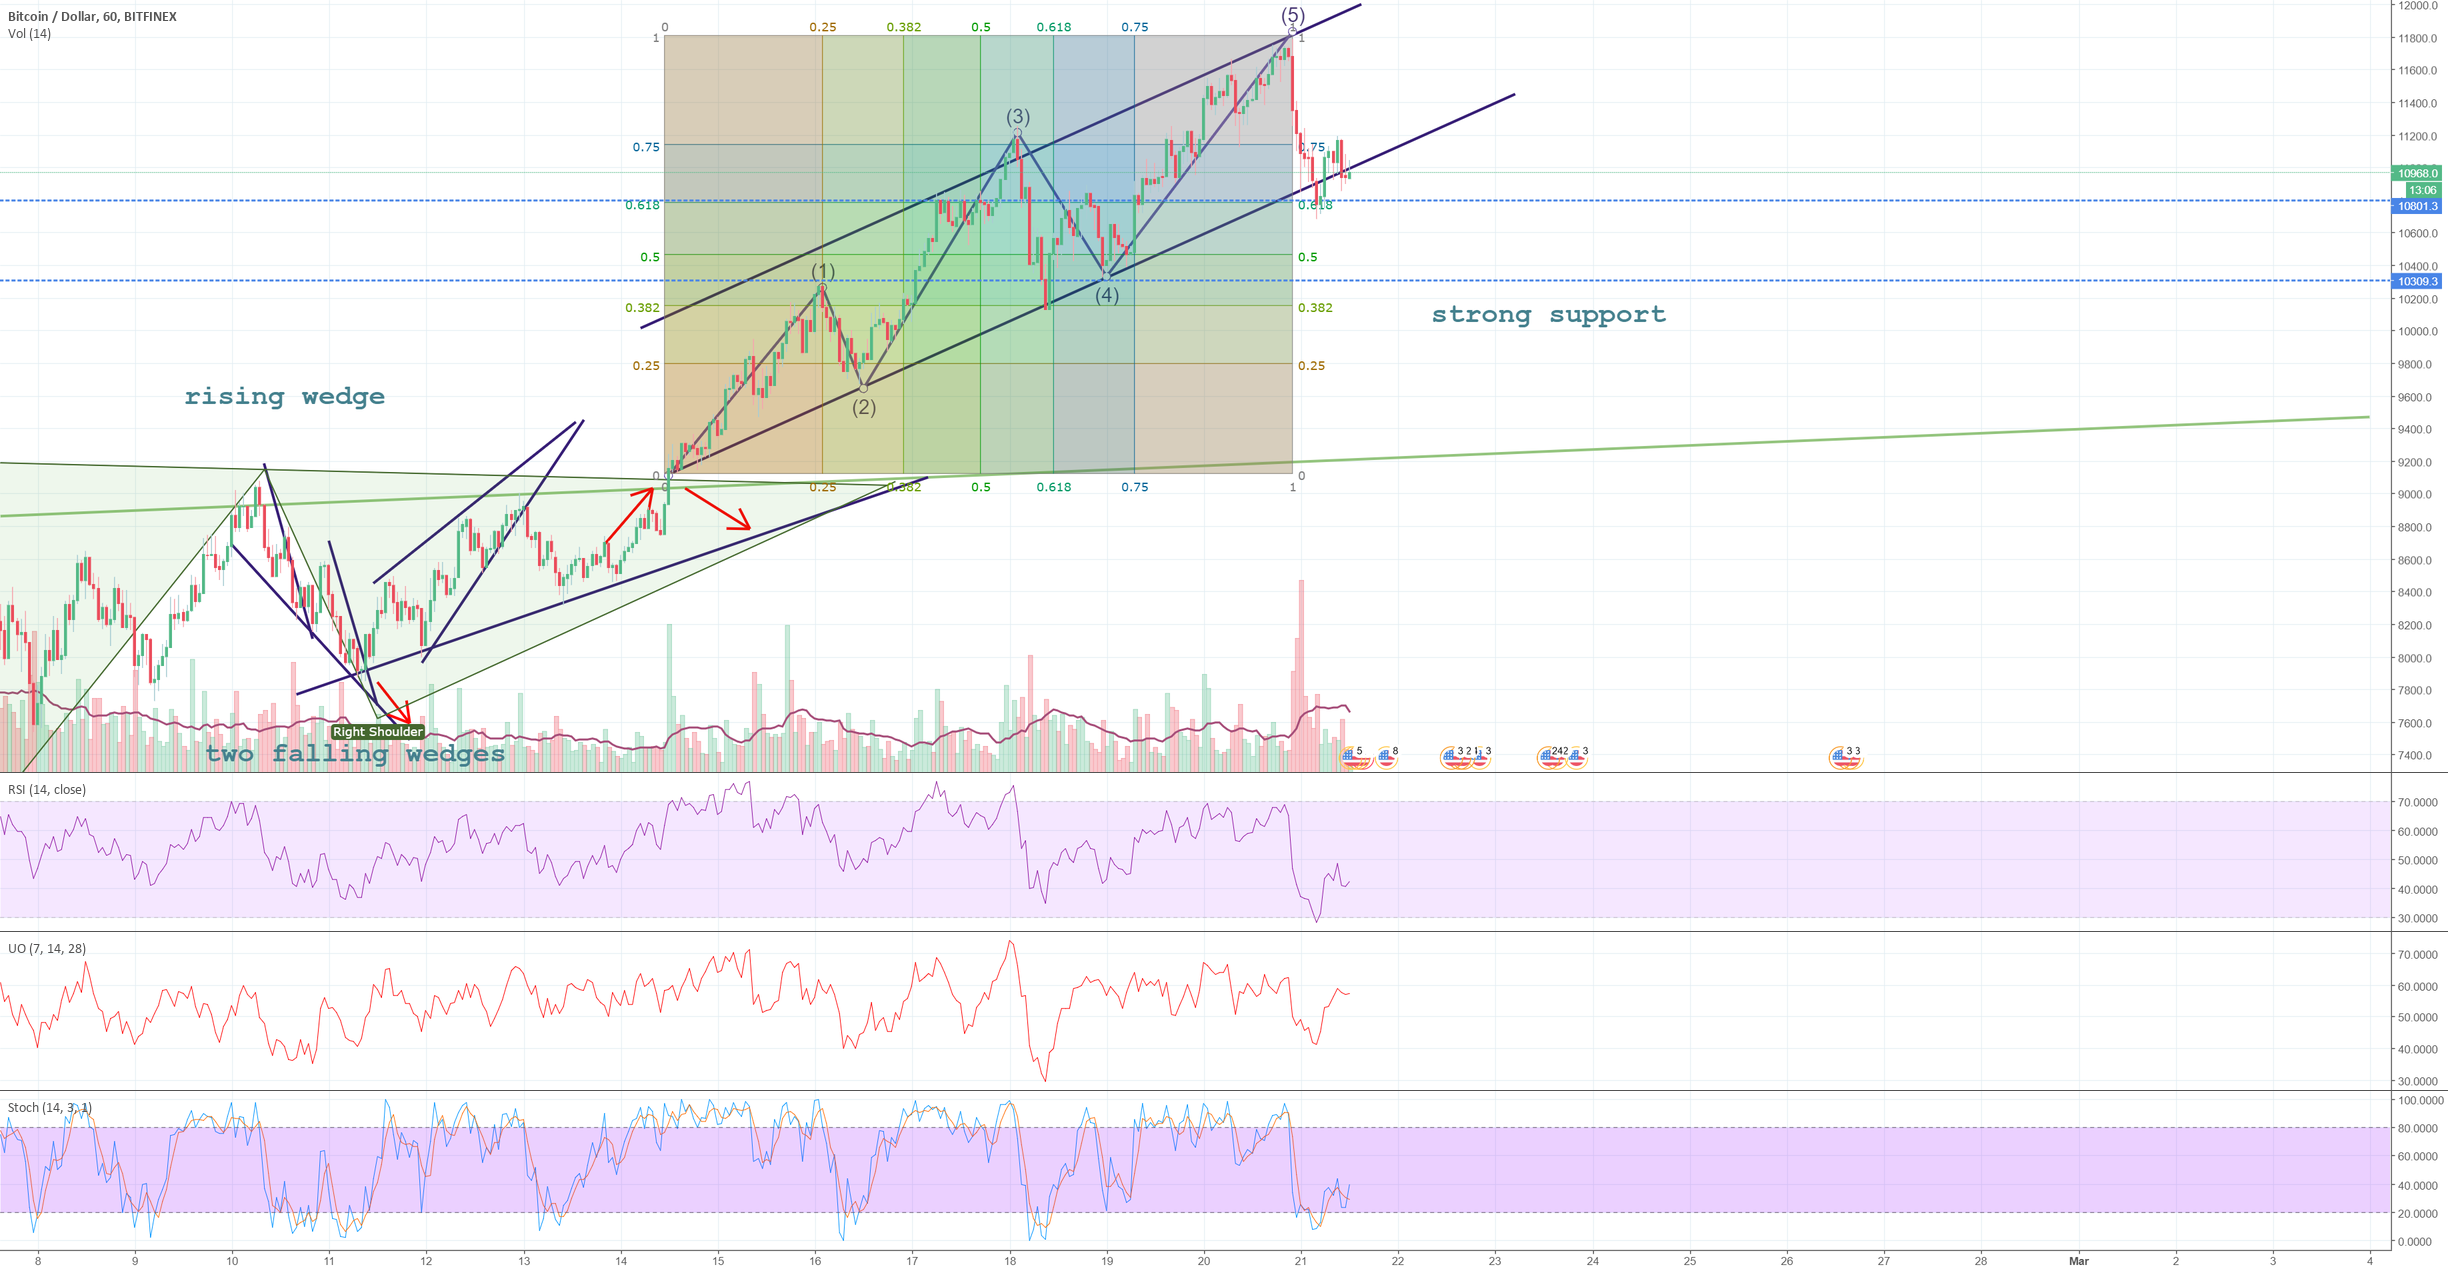 BTC to remain bullish, Alts not so much